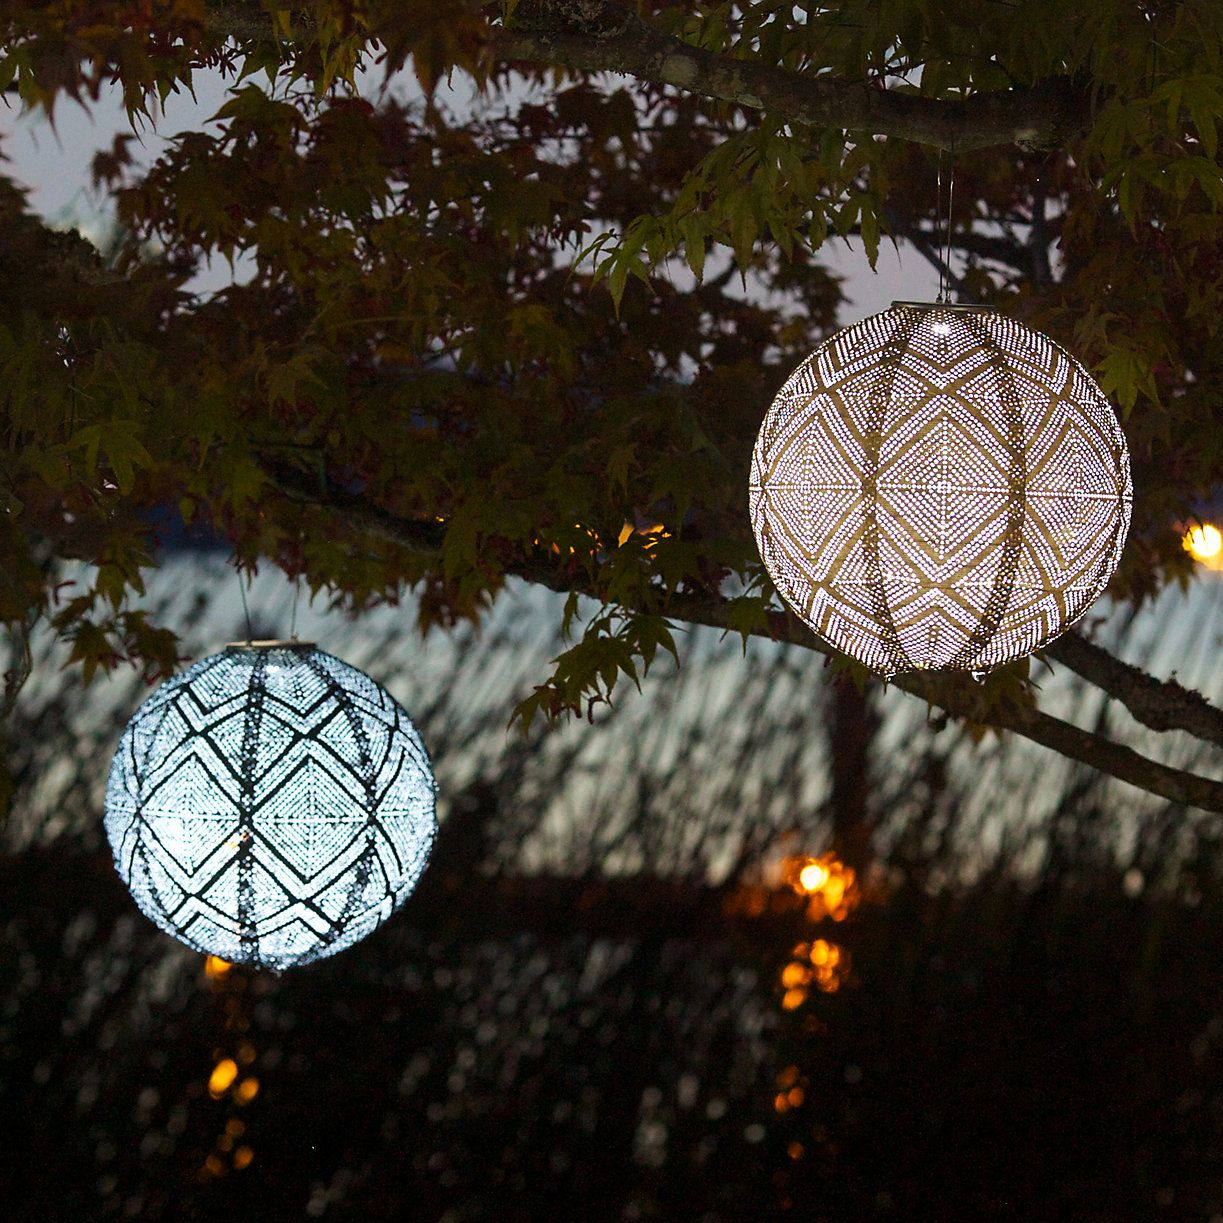 Add a soft glow to outdoor evenings with this solar